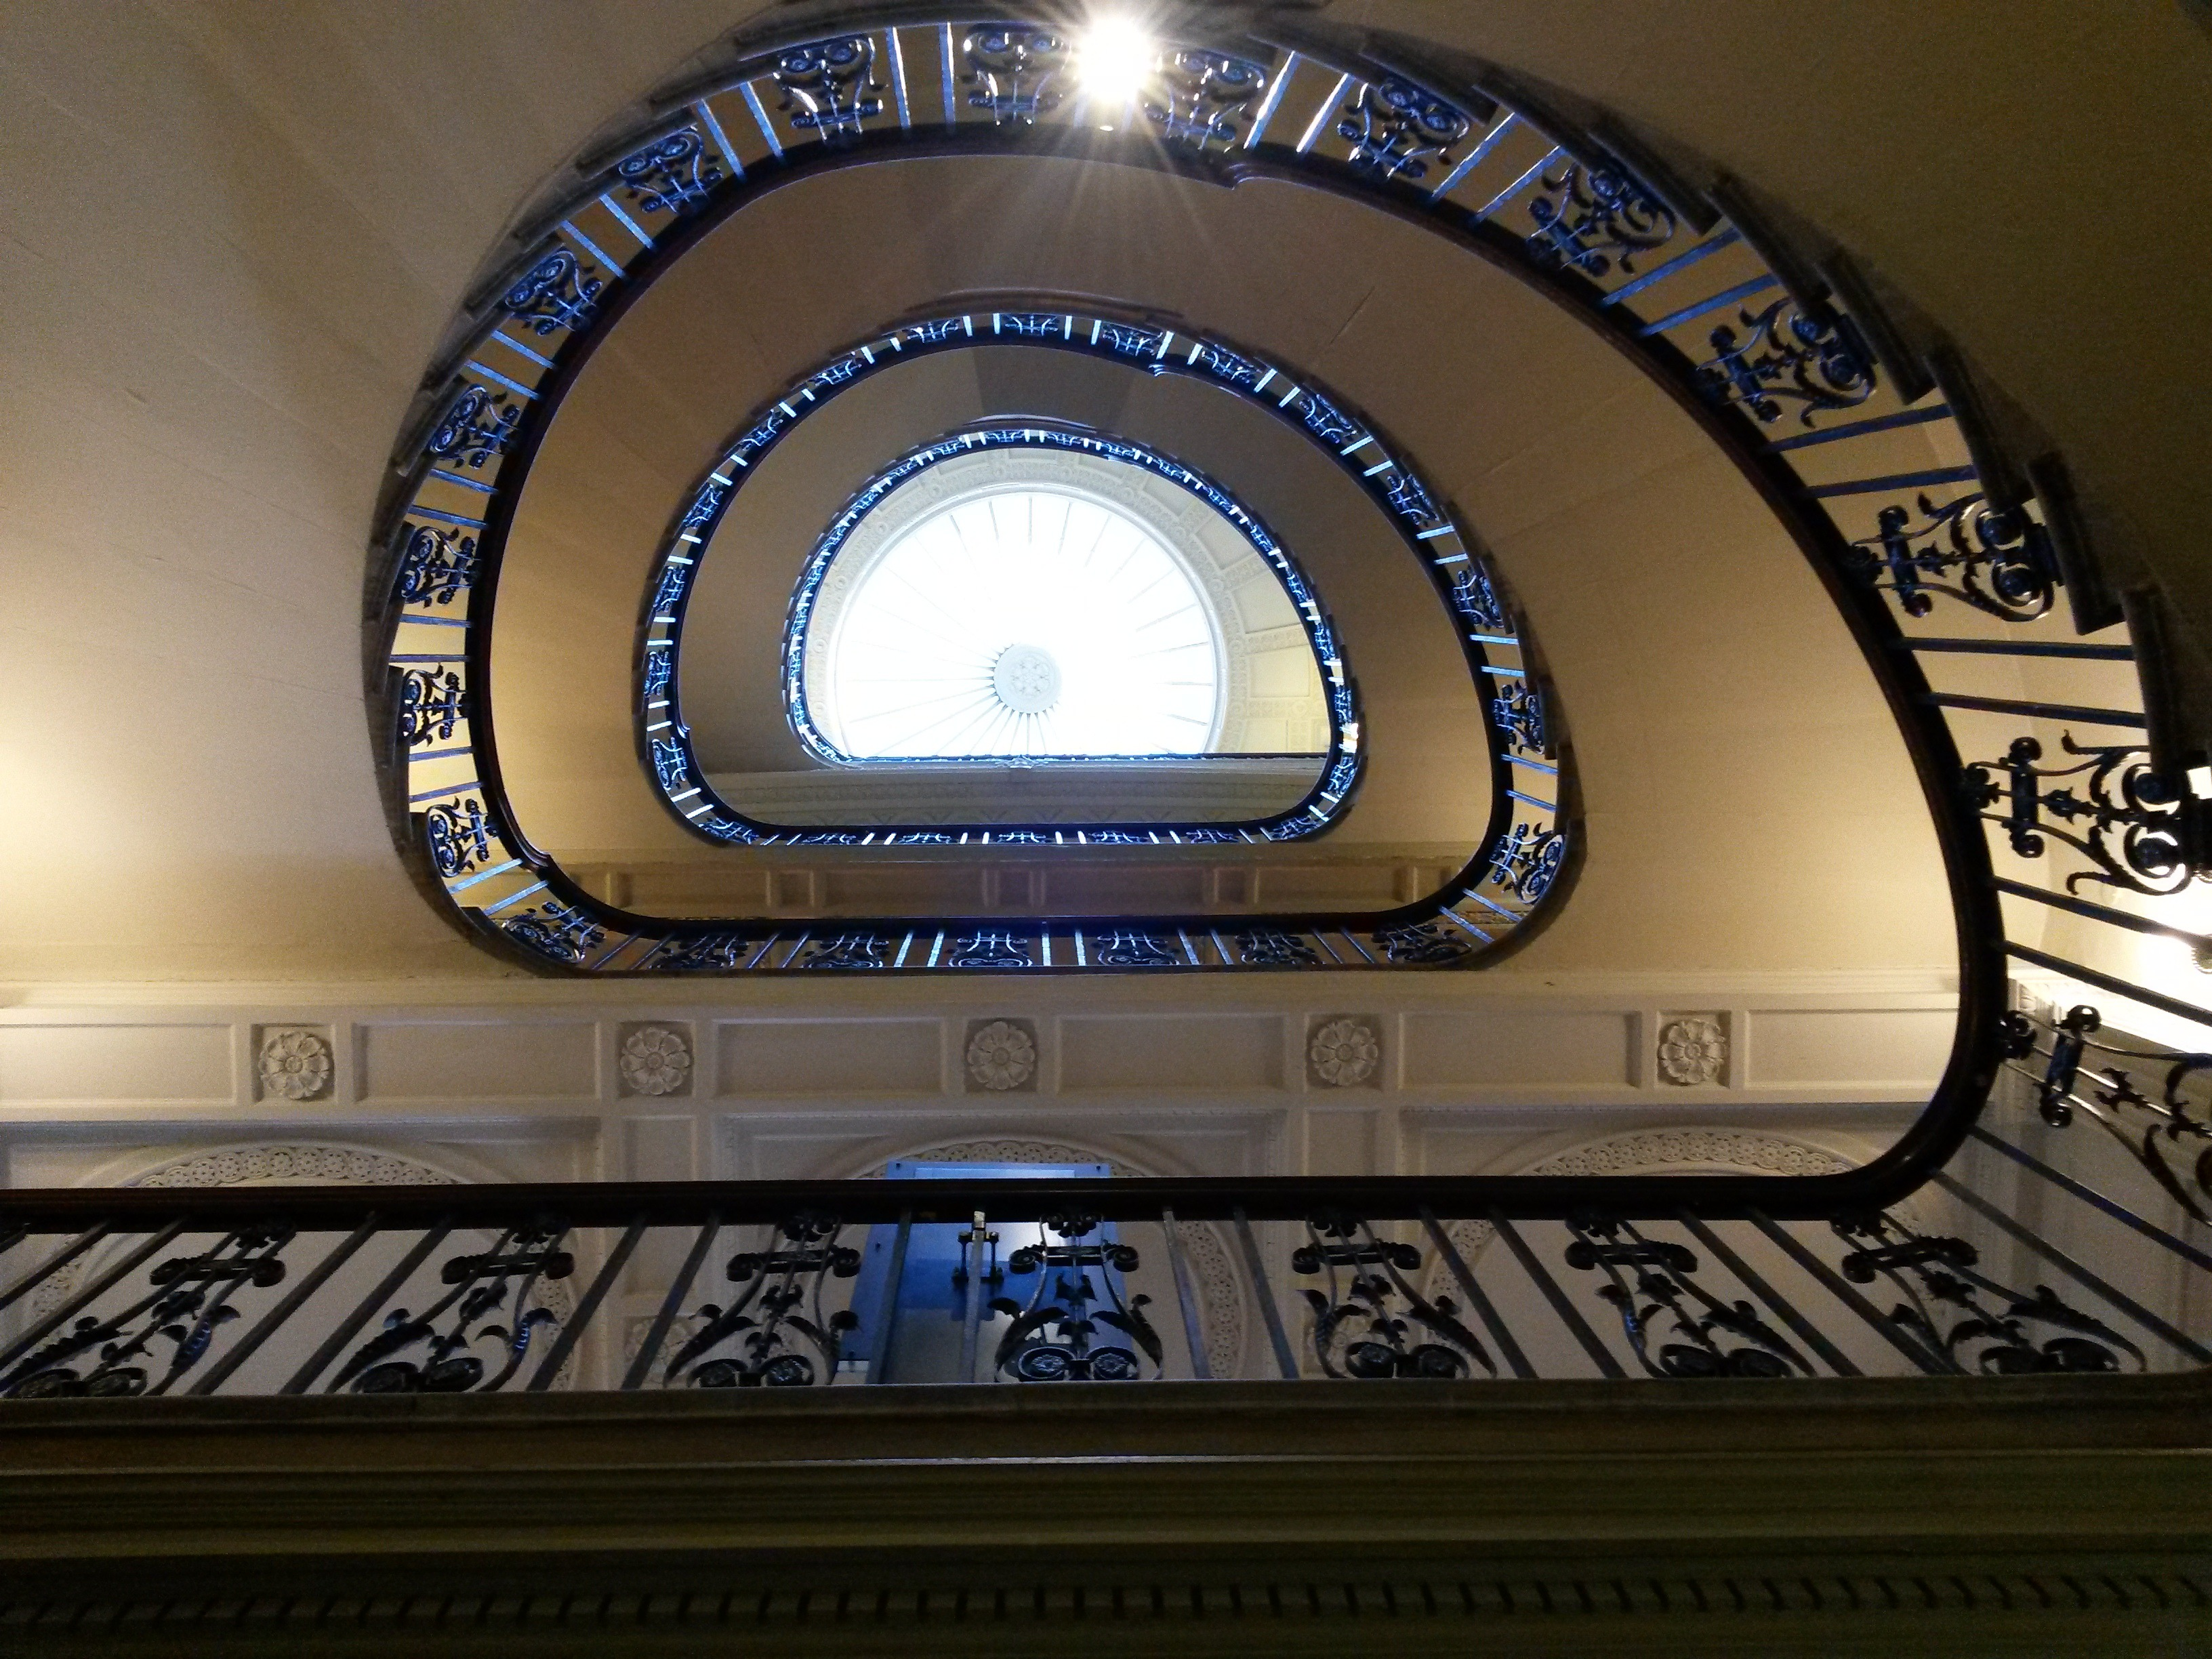 Courtauld staircase from below